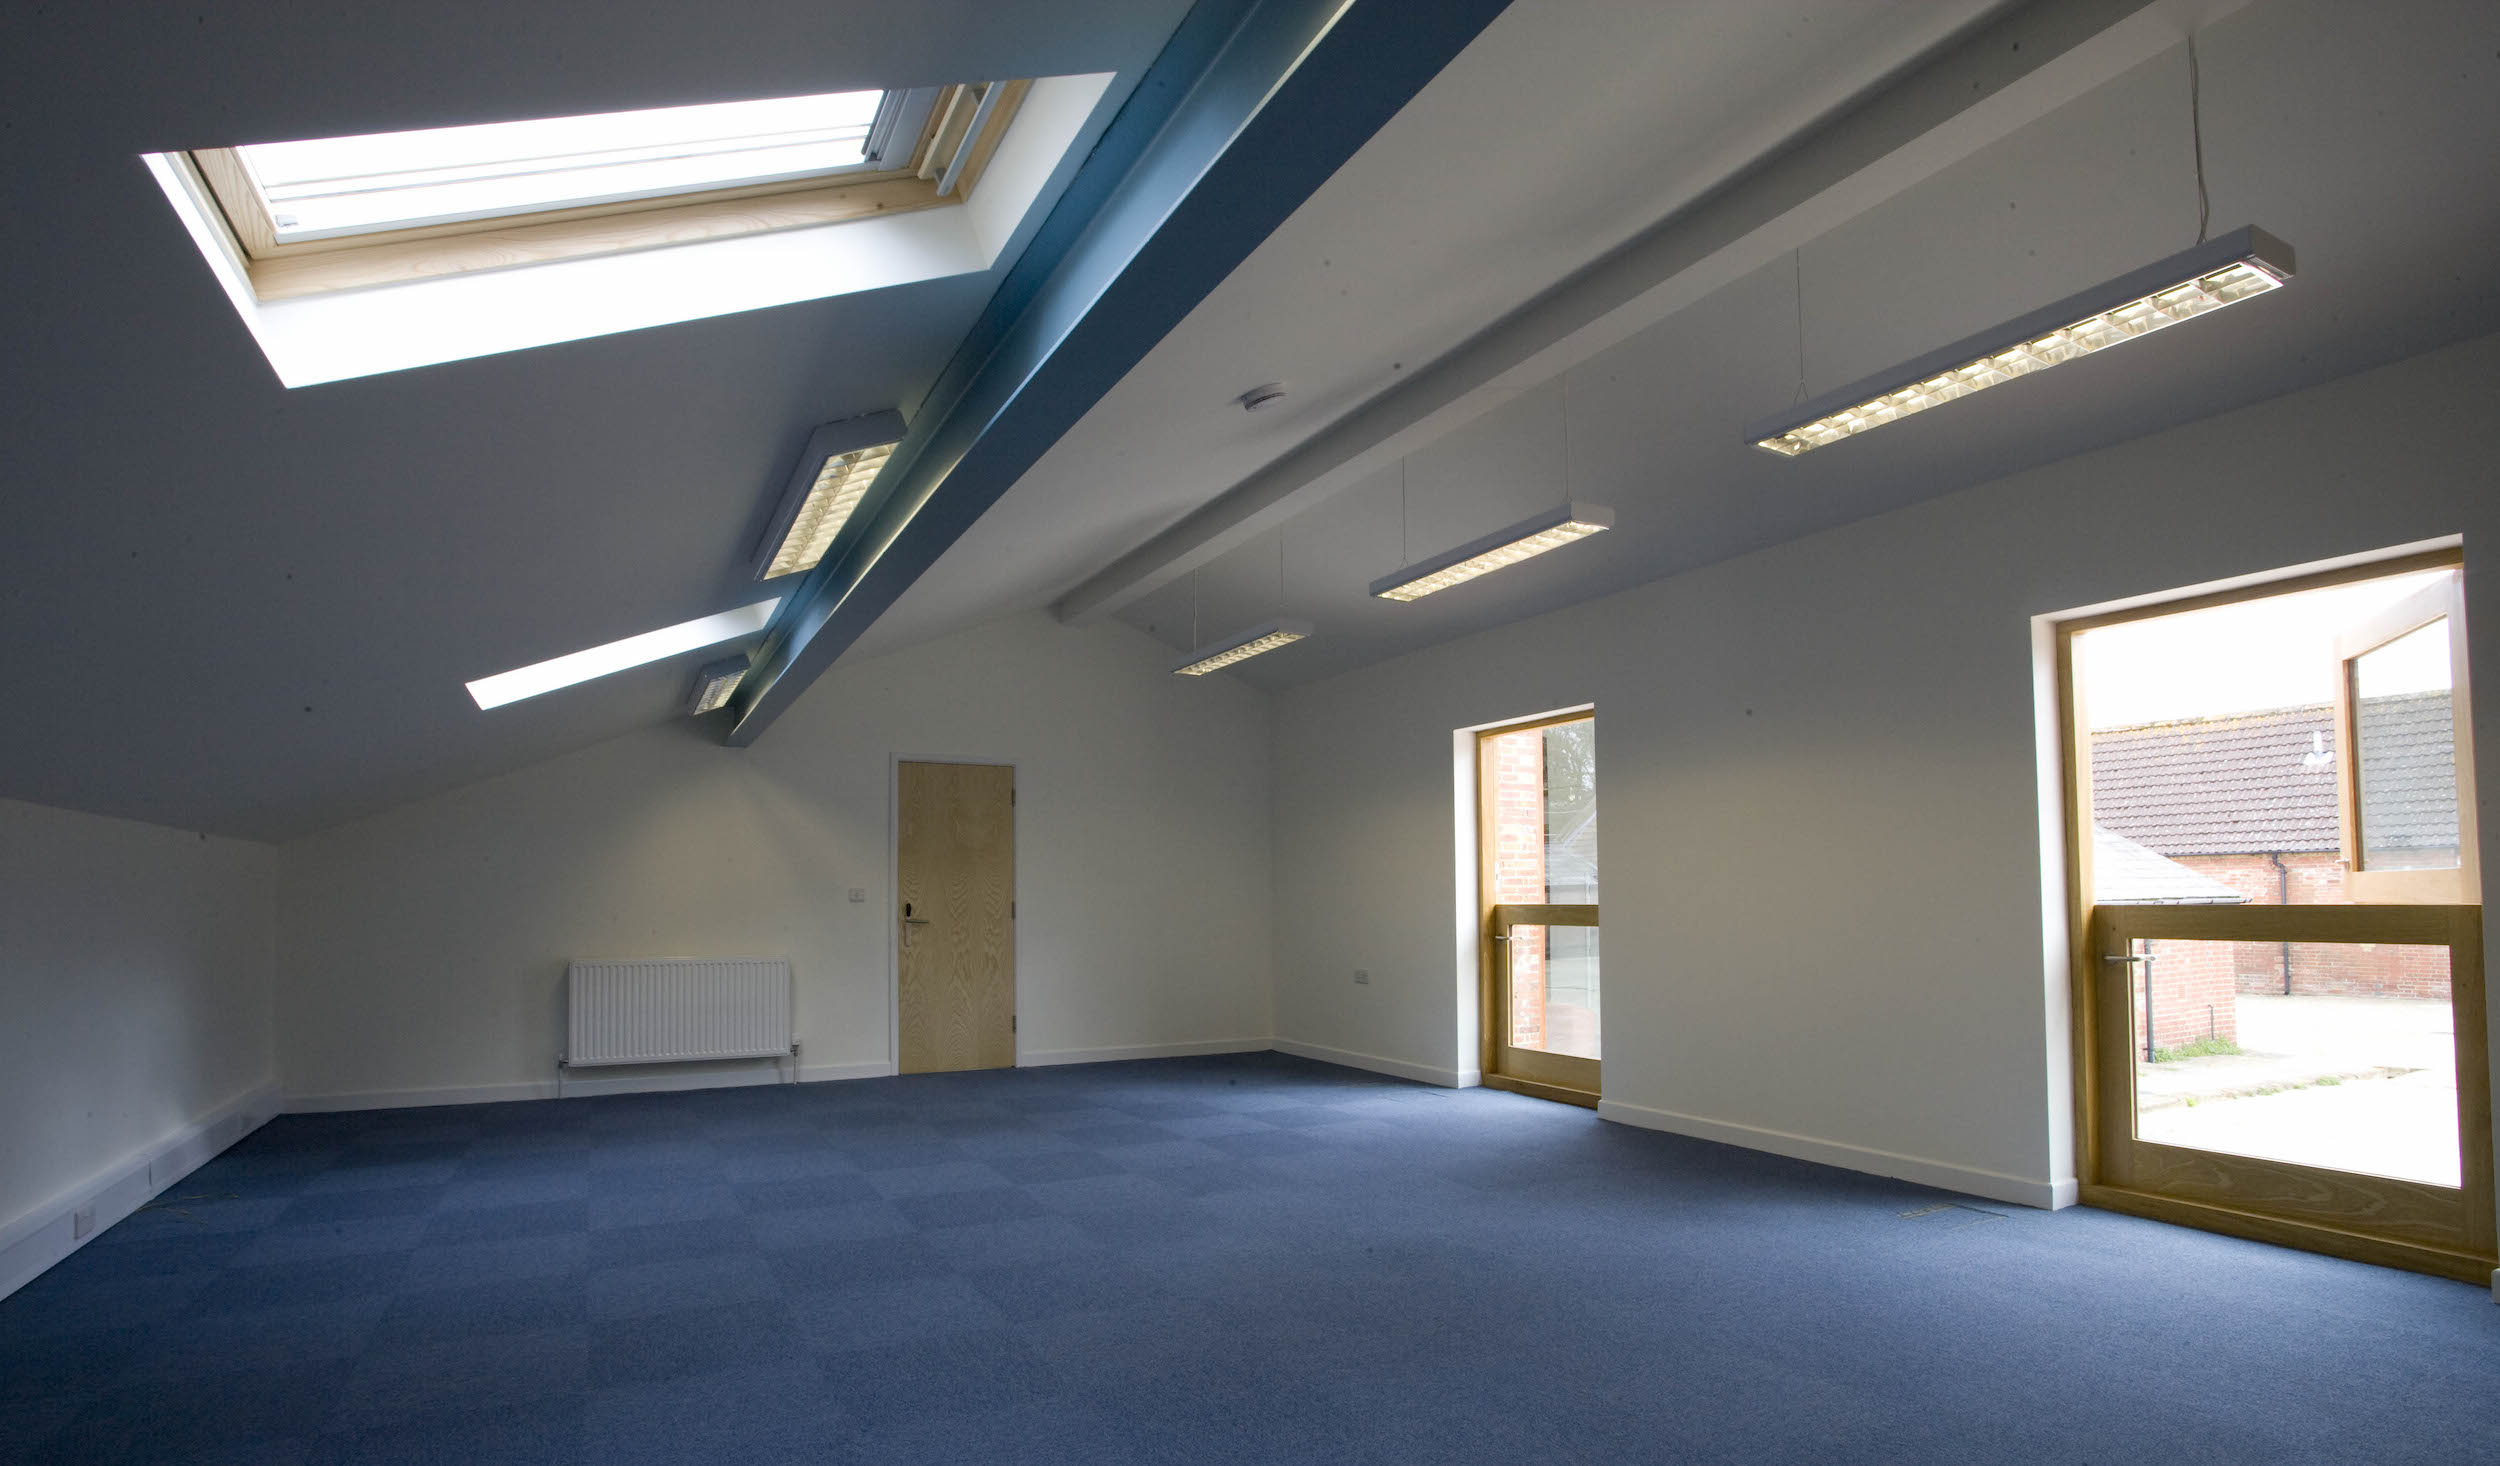 Office space at Efford Park